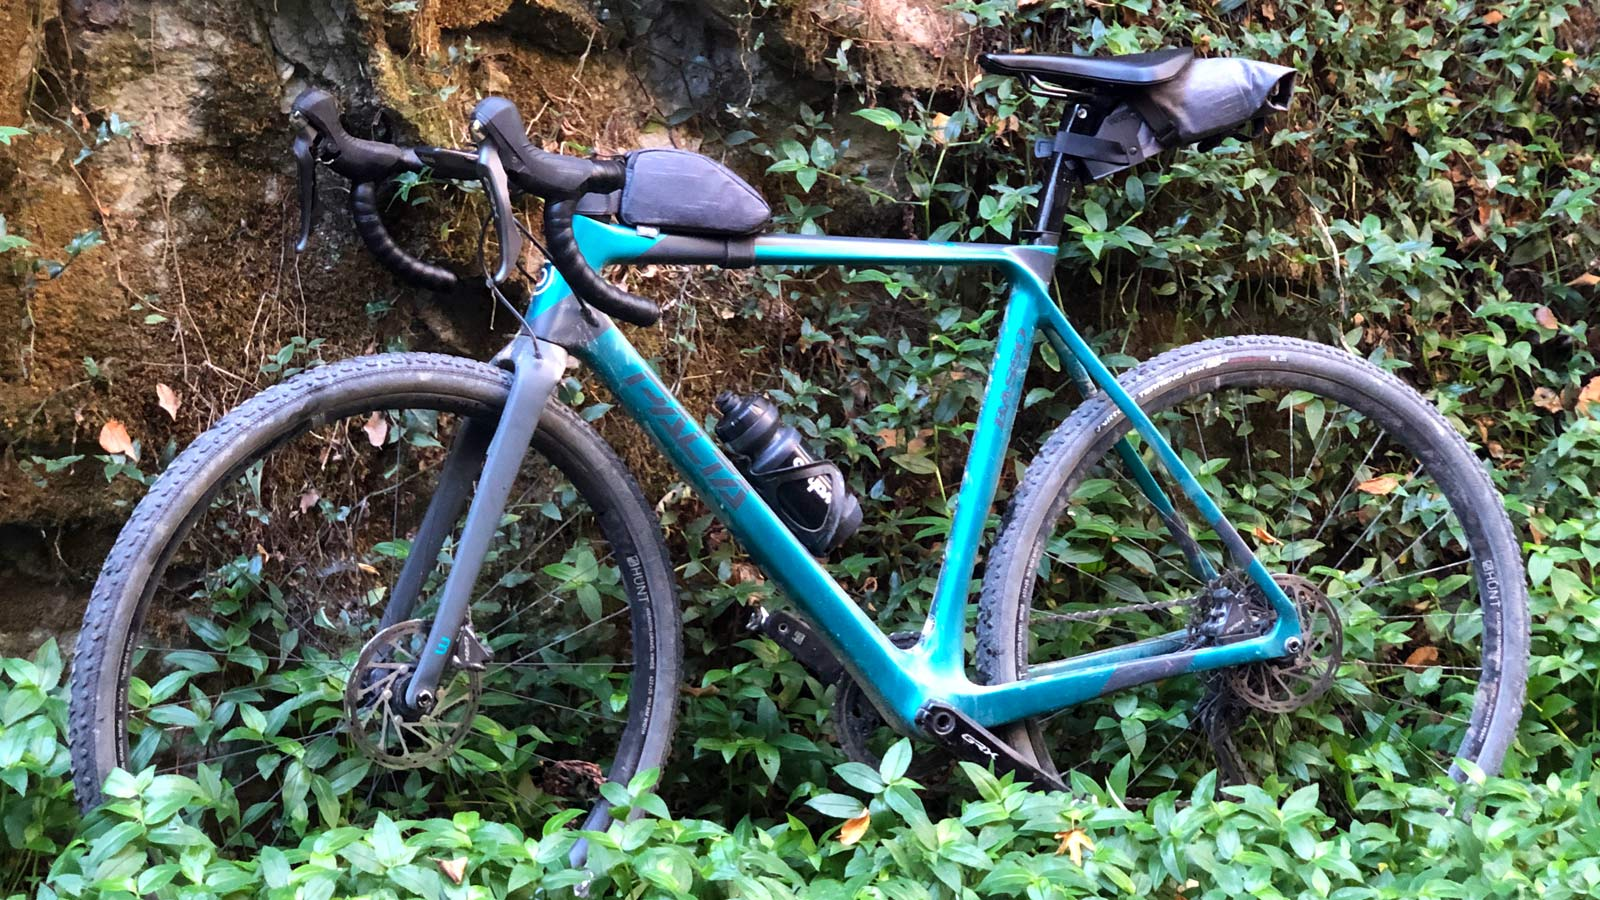 Basso Palta fast carbon gravel road bike - review: road-inspired fast, stiff, made-in-Italy, non-driveside